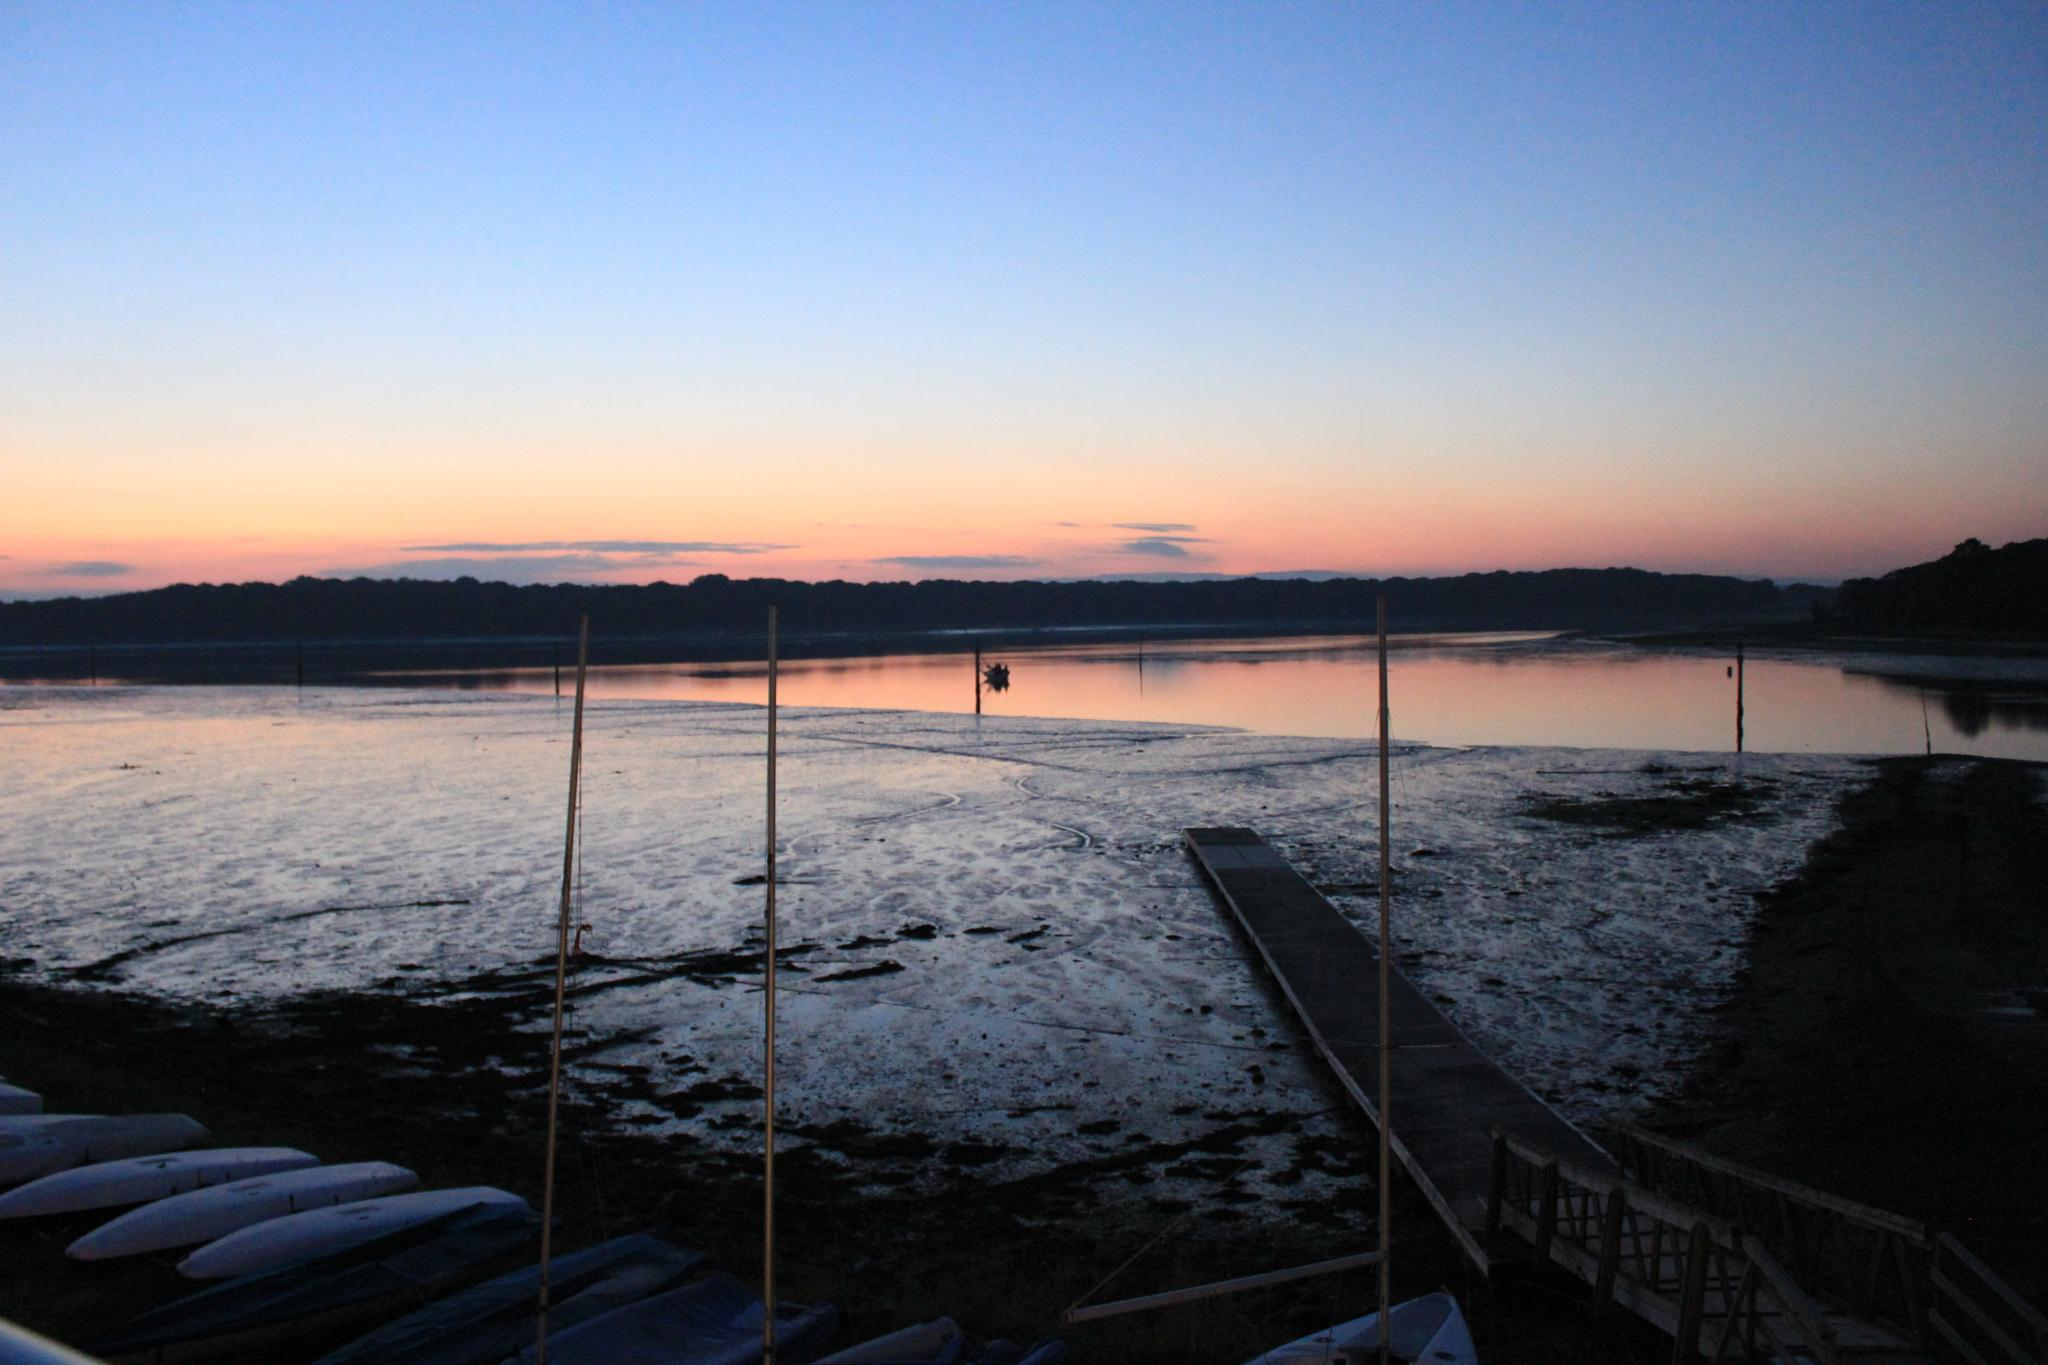 Chichester, waiting on a tide by colin.savidge